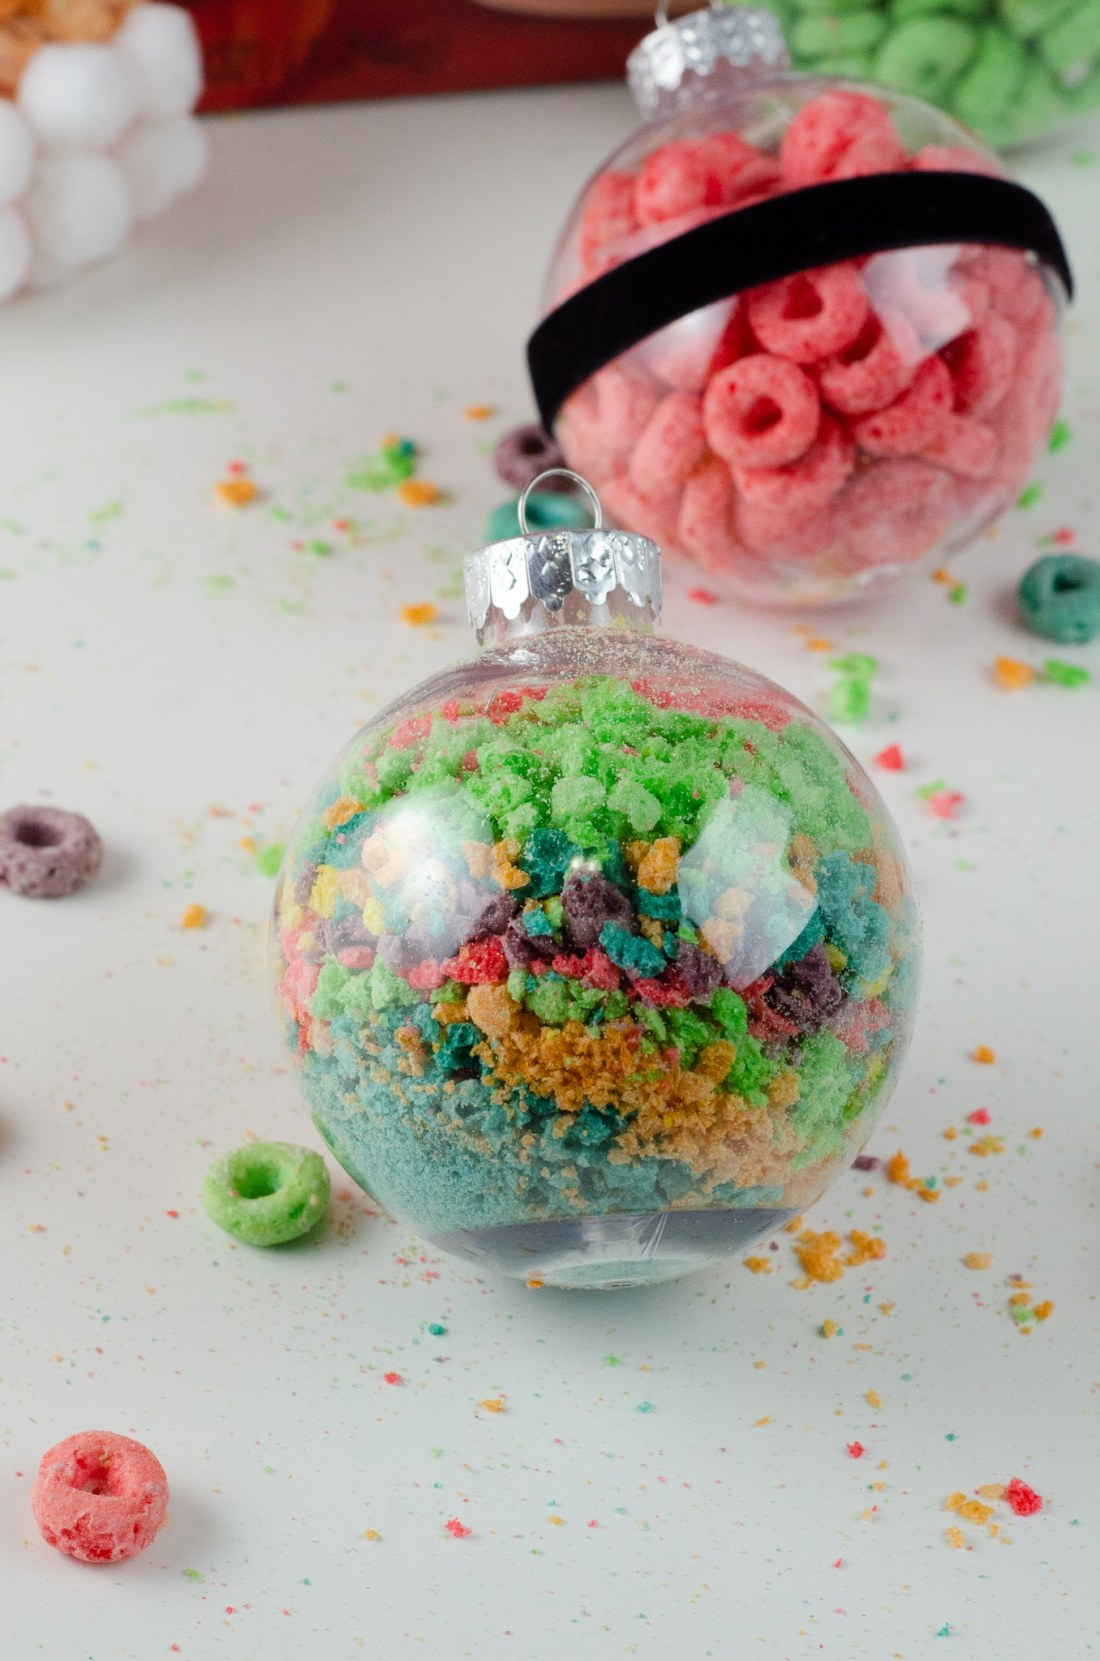 Christmas Ornament Ideas for Kids Using Cereal Abstract Santa Belly. It's time to let the kids be the boss for this new kid-friendly Christmas DIY. Rethink Cereal with somr my Christmas Ornament Ideas for Kids Using Cereal.